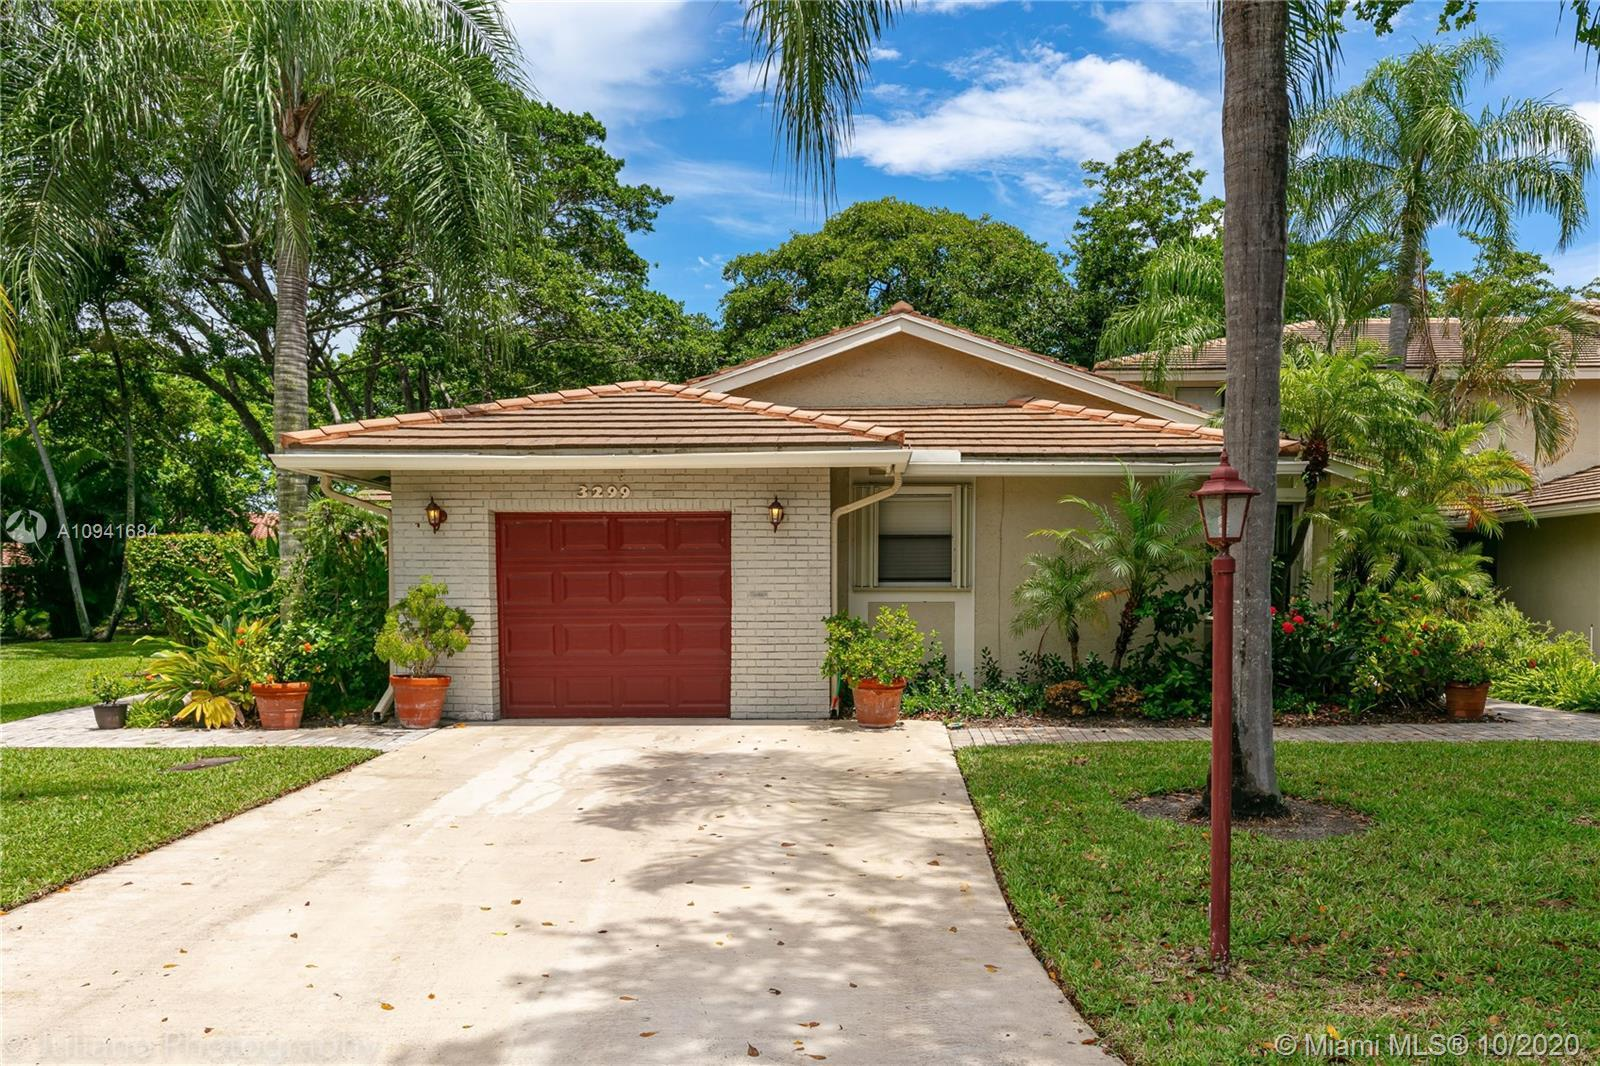 Highly sought after Deer Creek 2 bed / 2 bath Villa beautifully maintained and updated!  Porcelain f